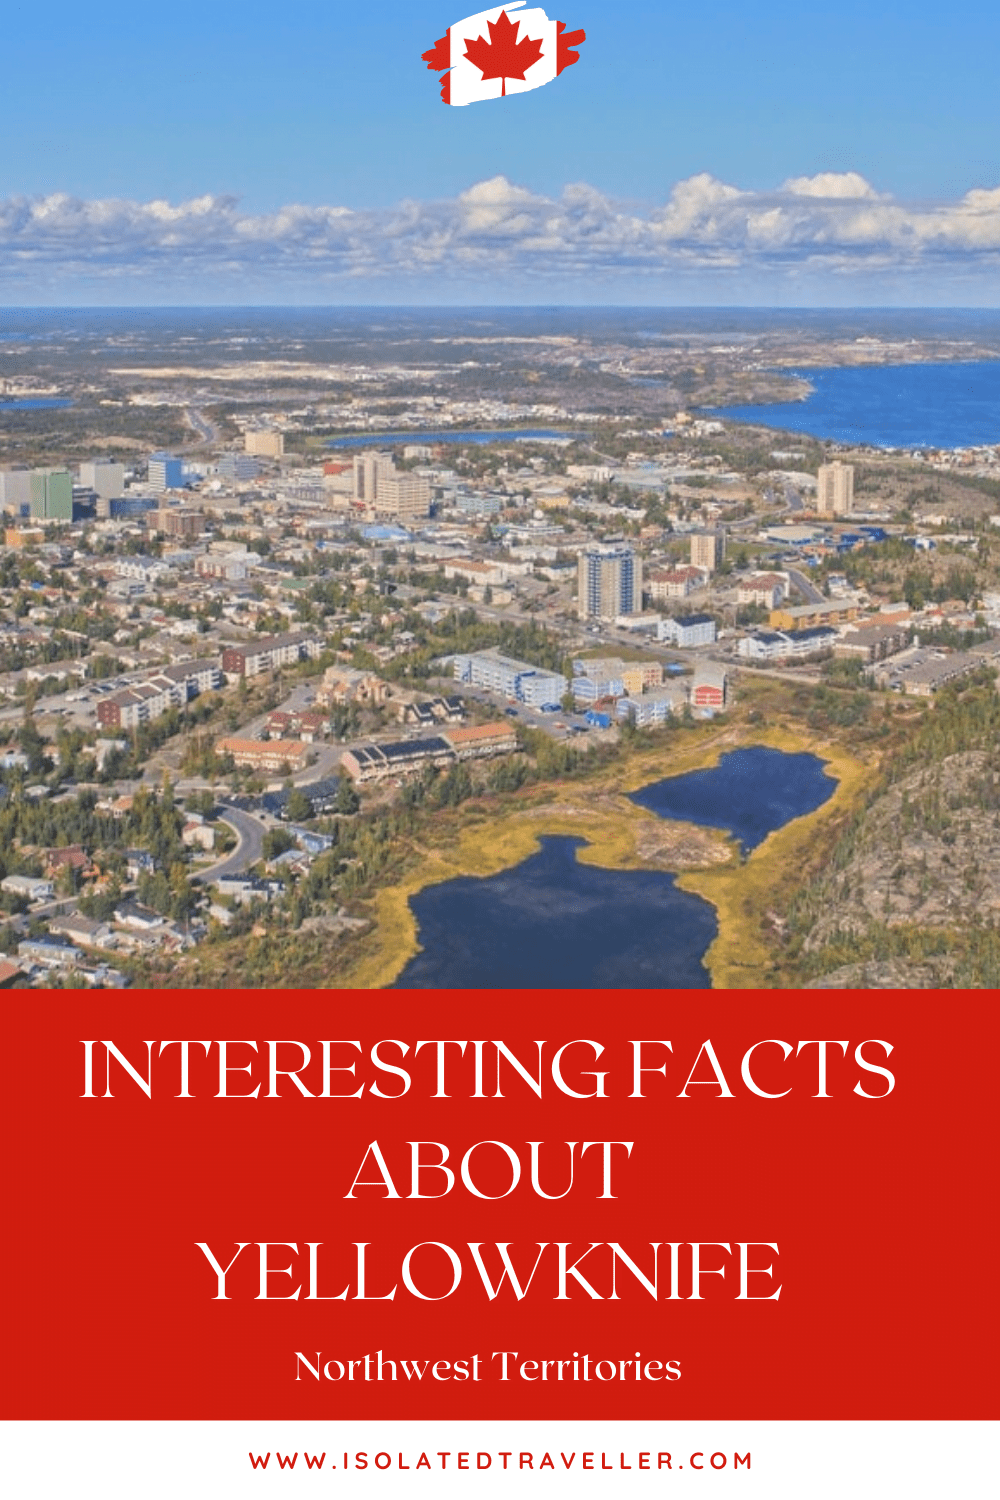 Facts About Yellowknife